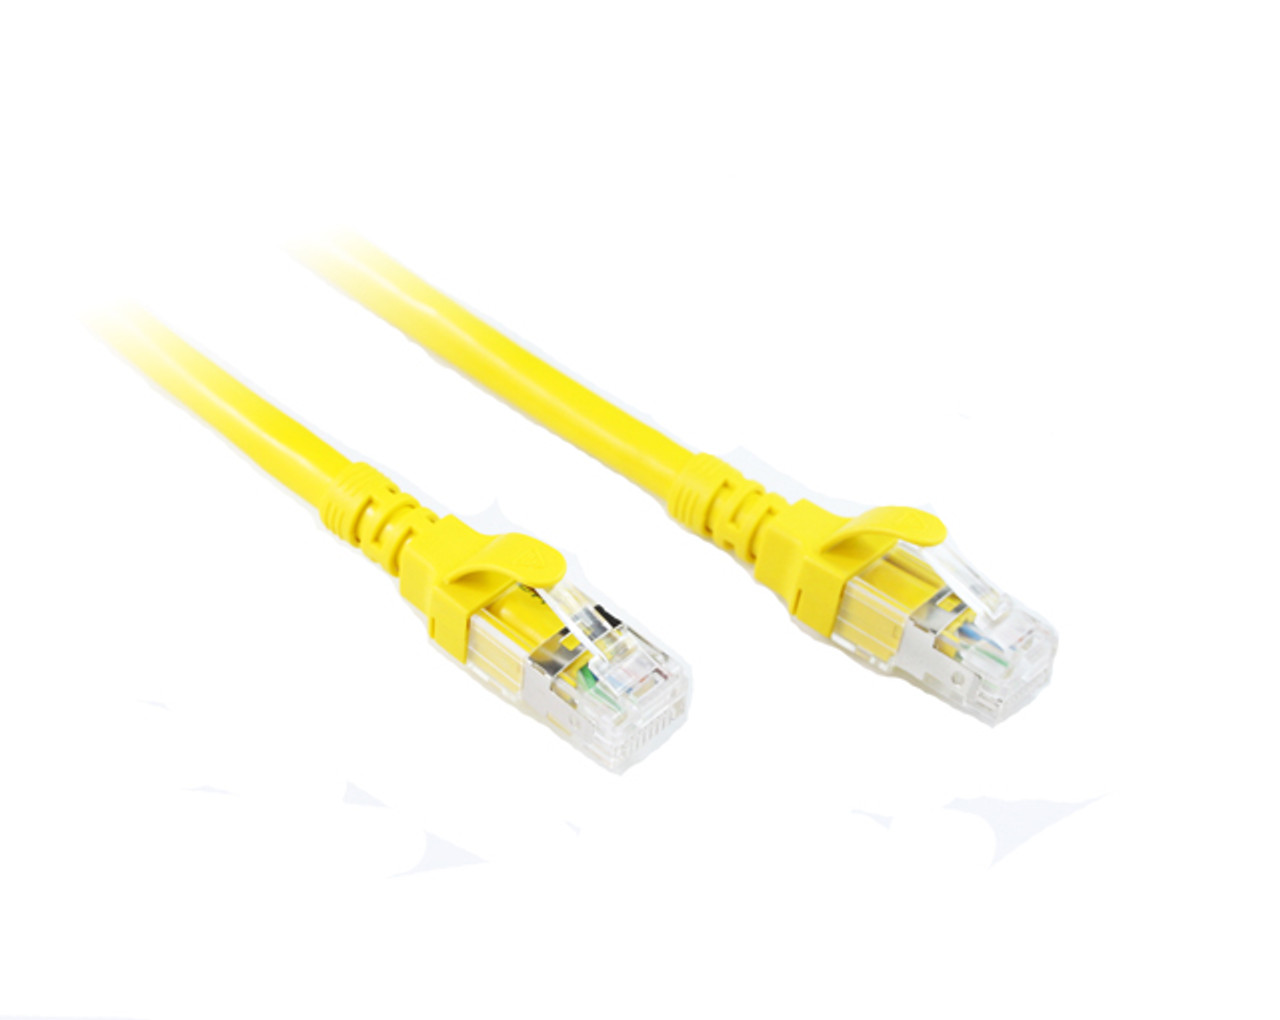 Product image for 0.5M Yellow Cat 6A 10GB SSTP/SFTP Cable | CX Computer Superstore